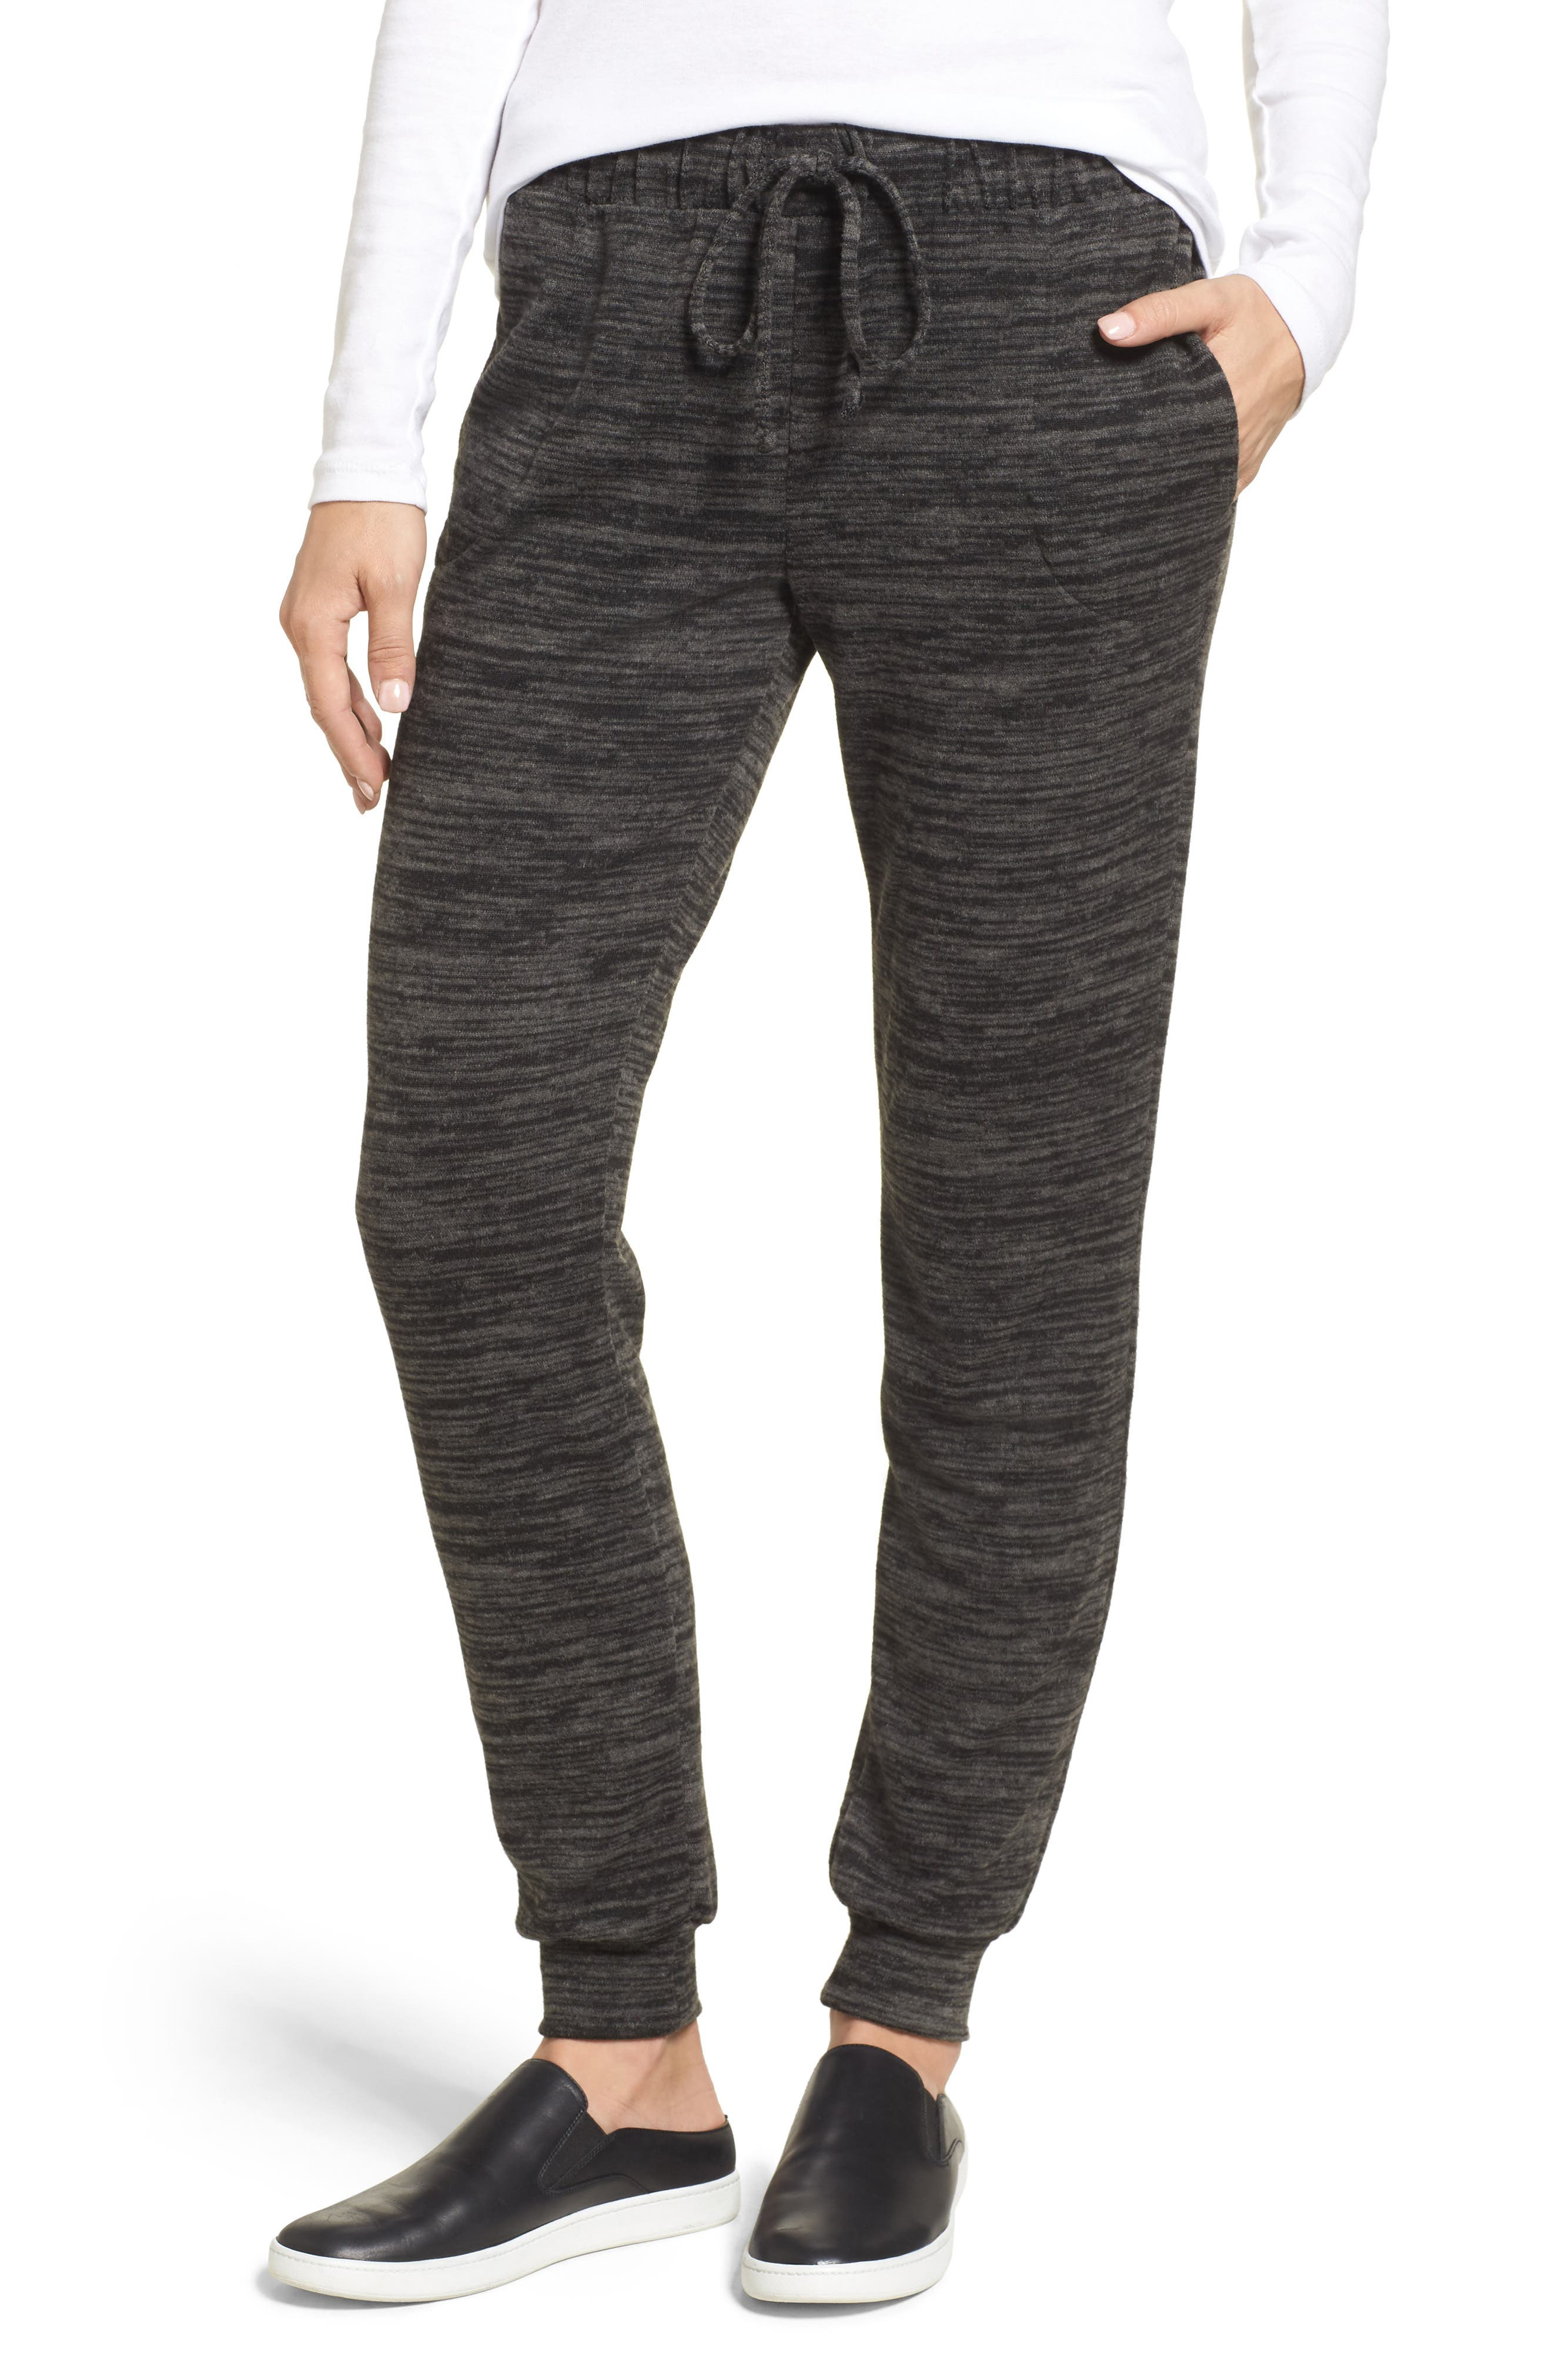 Cozy Jogger Pants,                             Main thumbnail 1, color,                             001